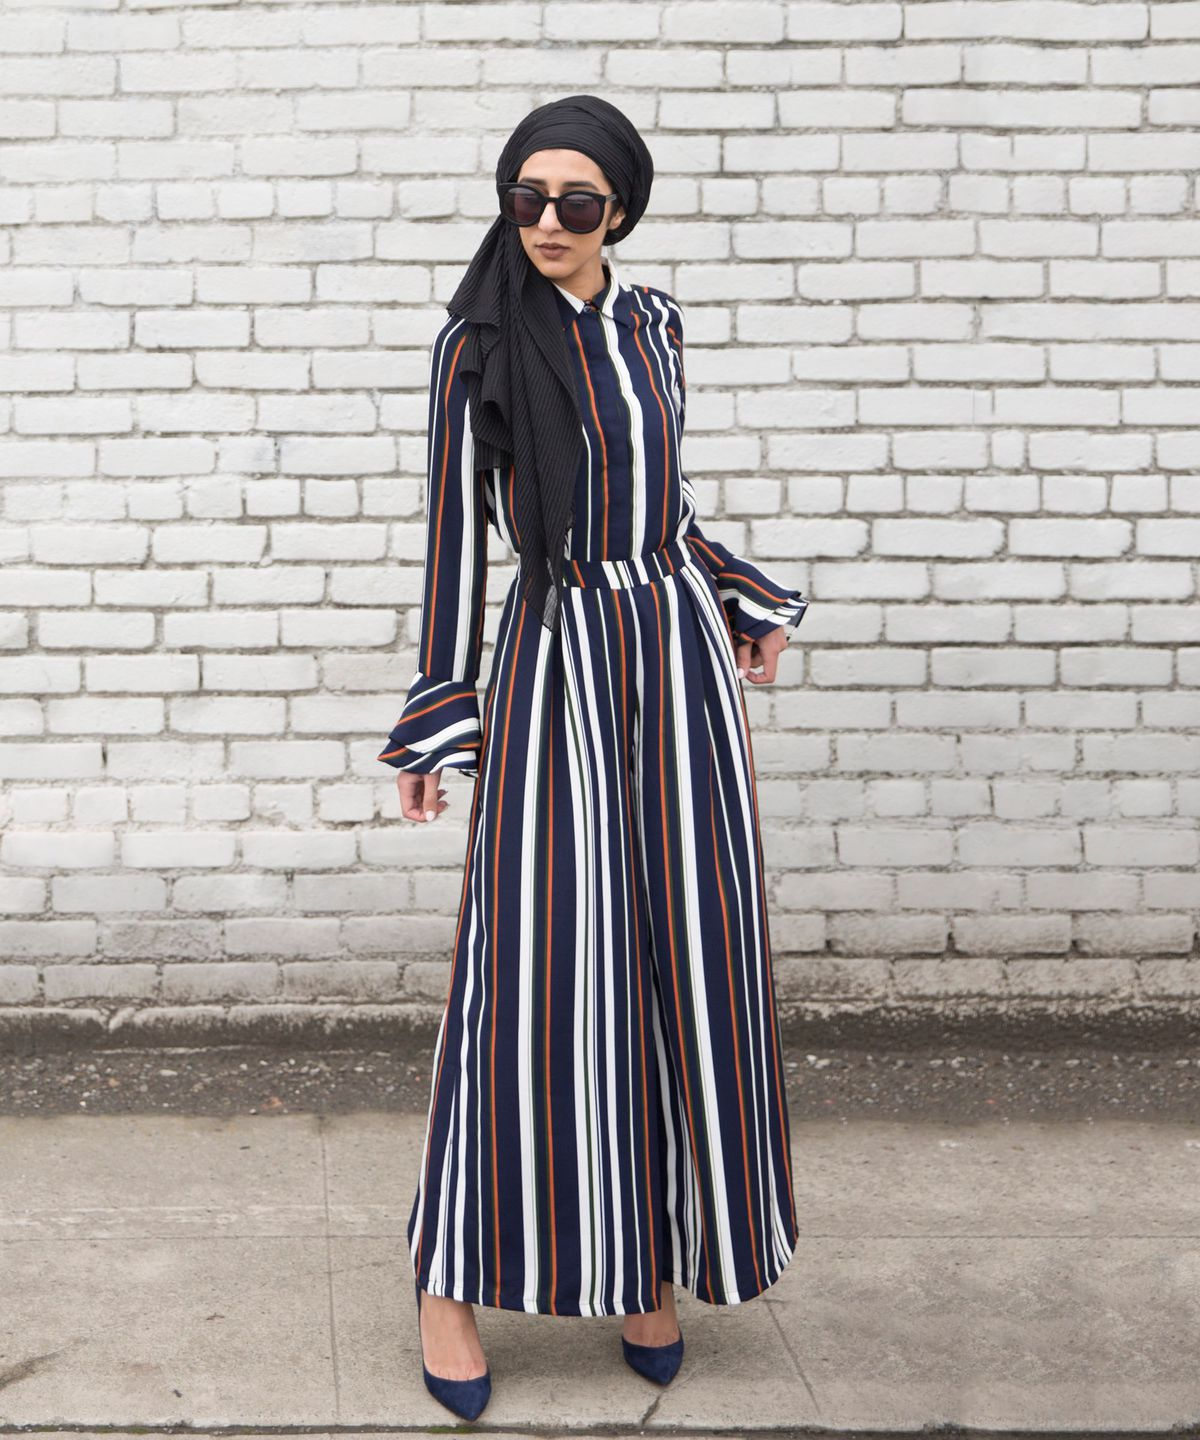 A hijab and maxi shirt-dress from the Verona Collection